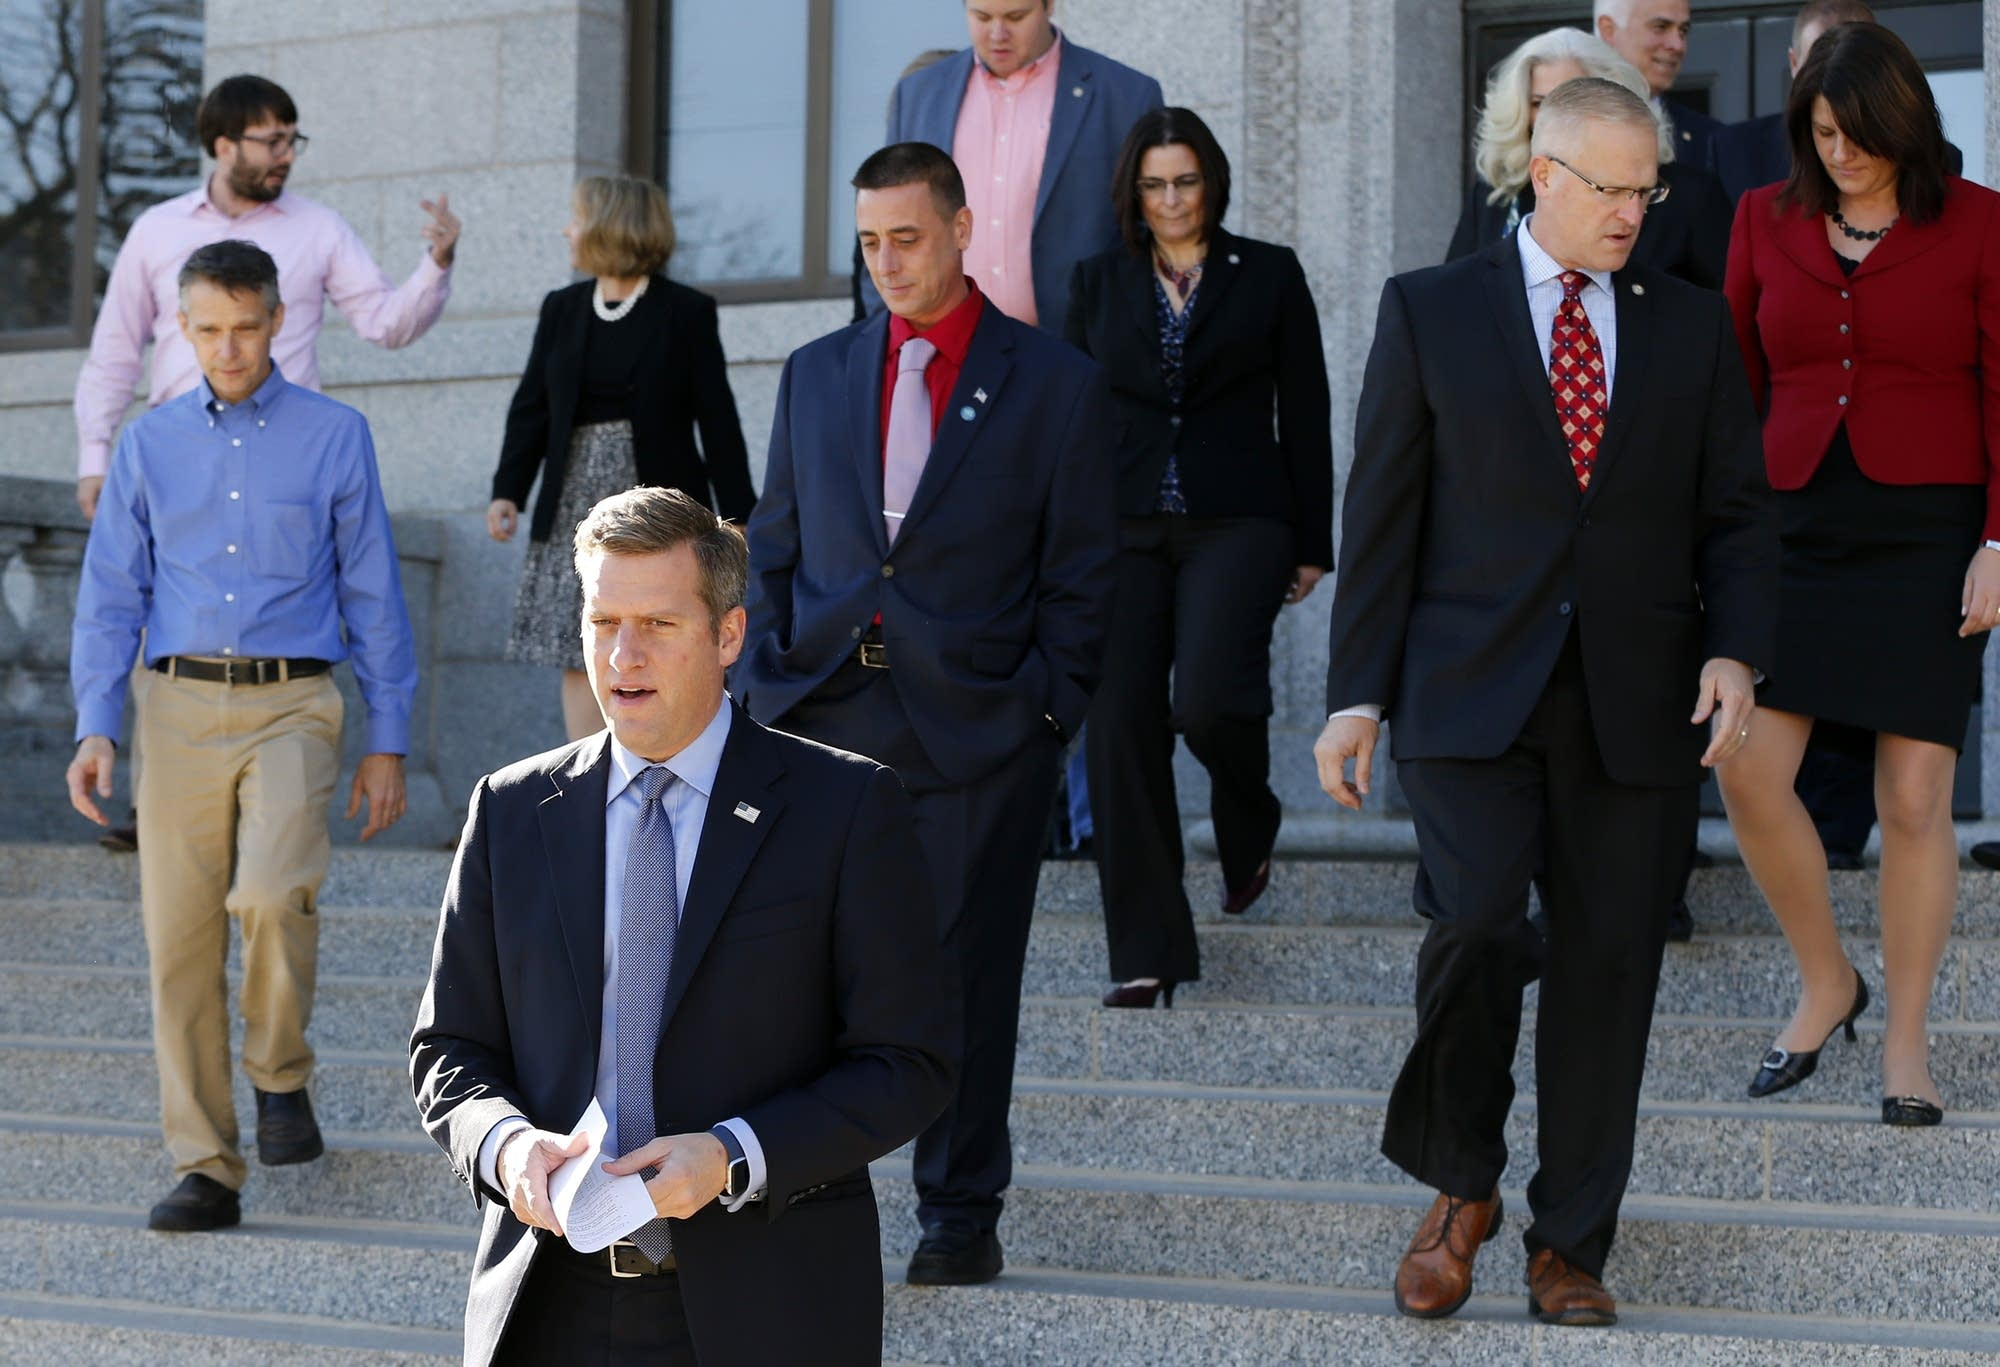 Kurt Daudt leads House member to press conference.